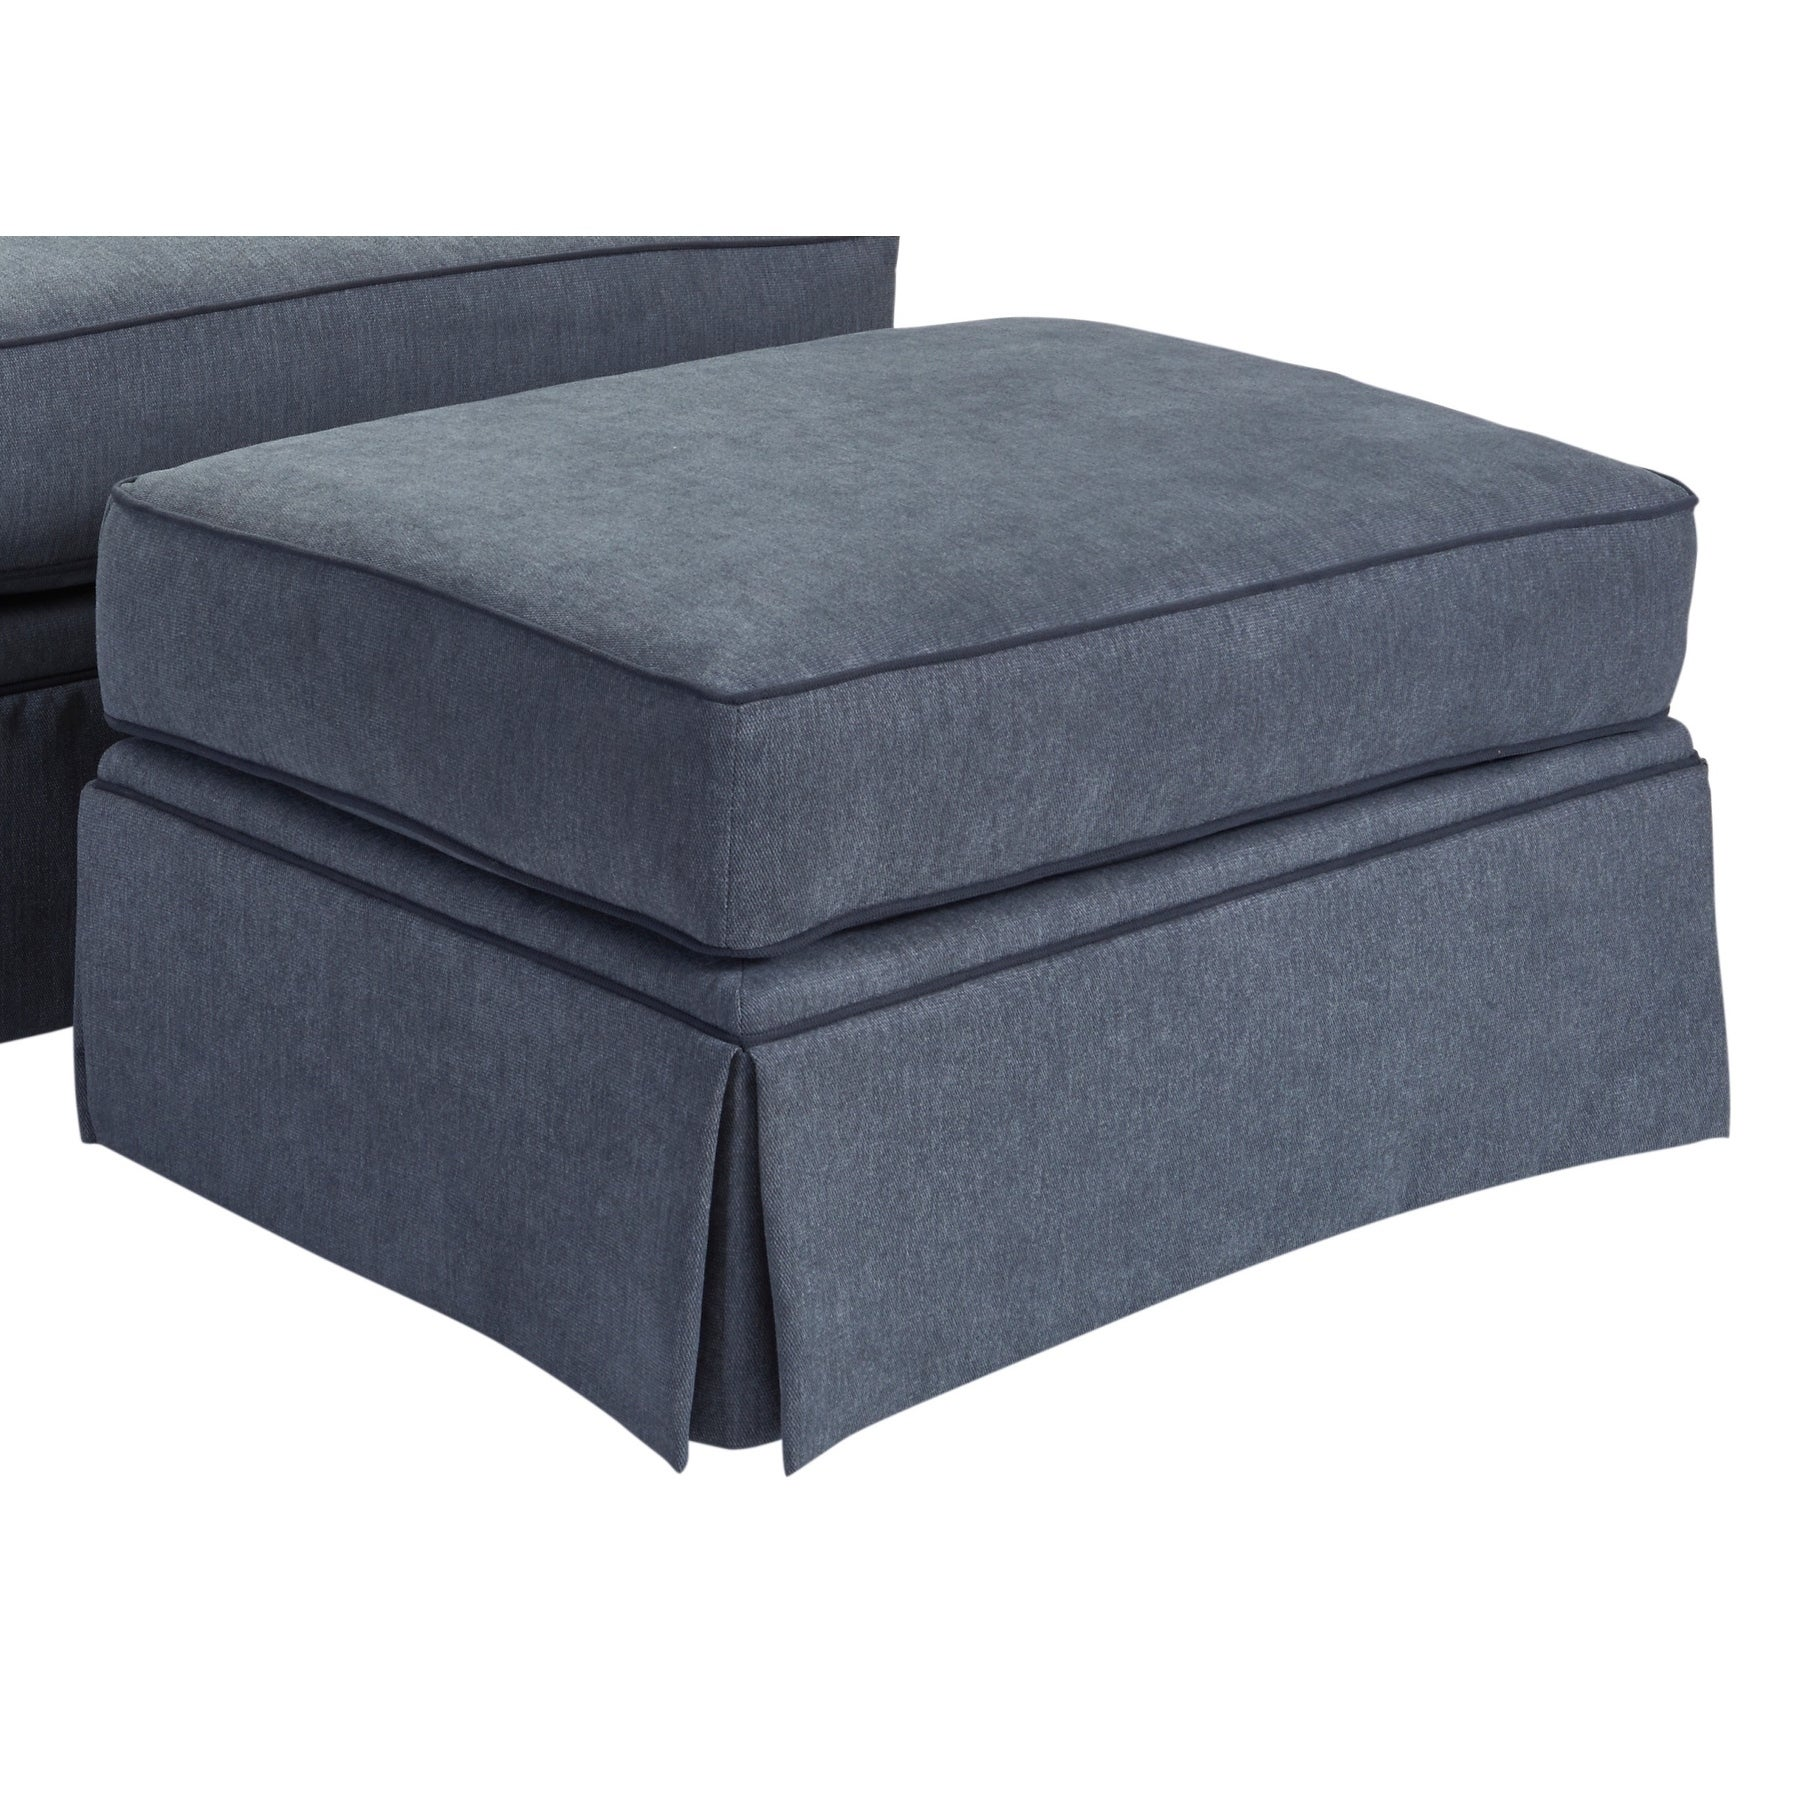 Magnificent Broyhill Emily Ottoman In Blue Dailytribune Chair Design For Home Dailytribuneorg